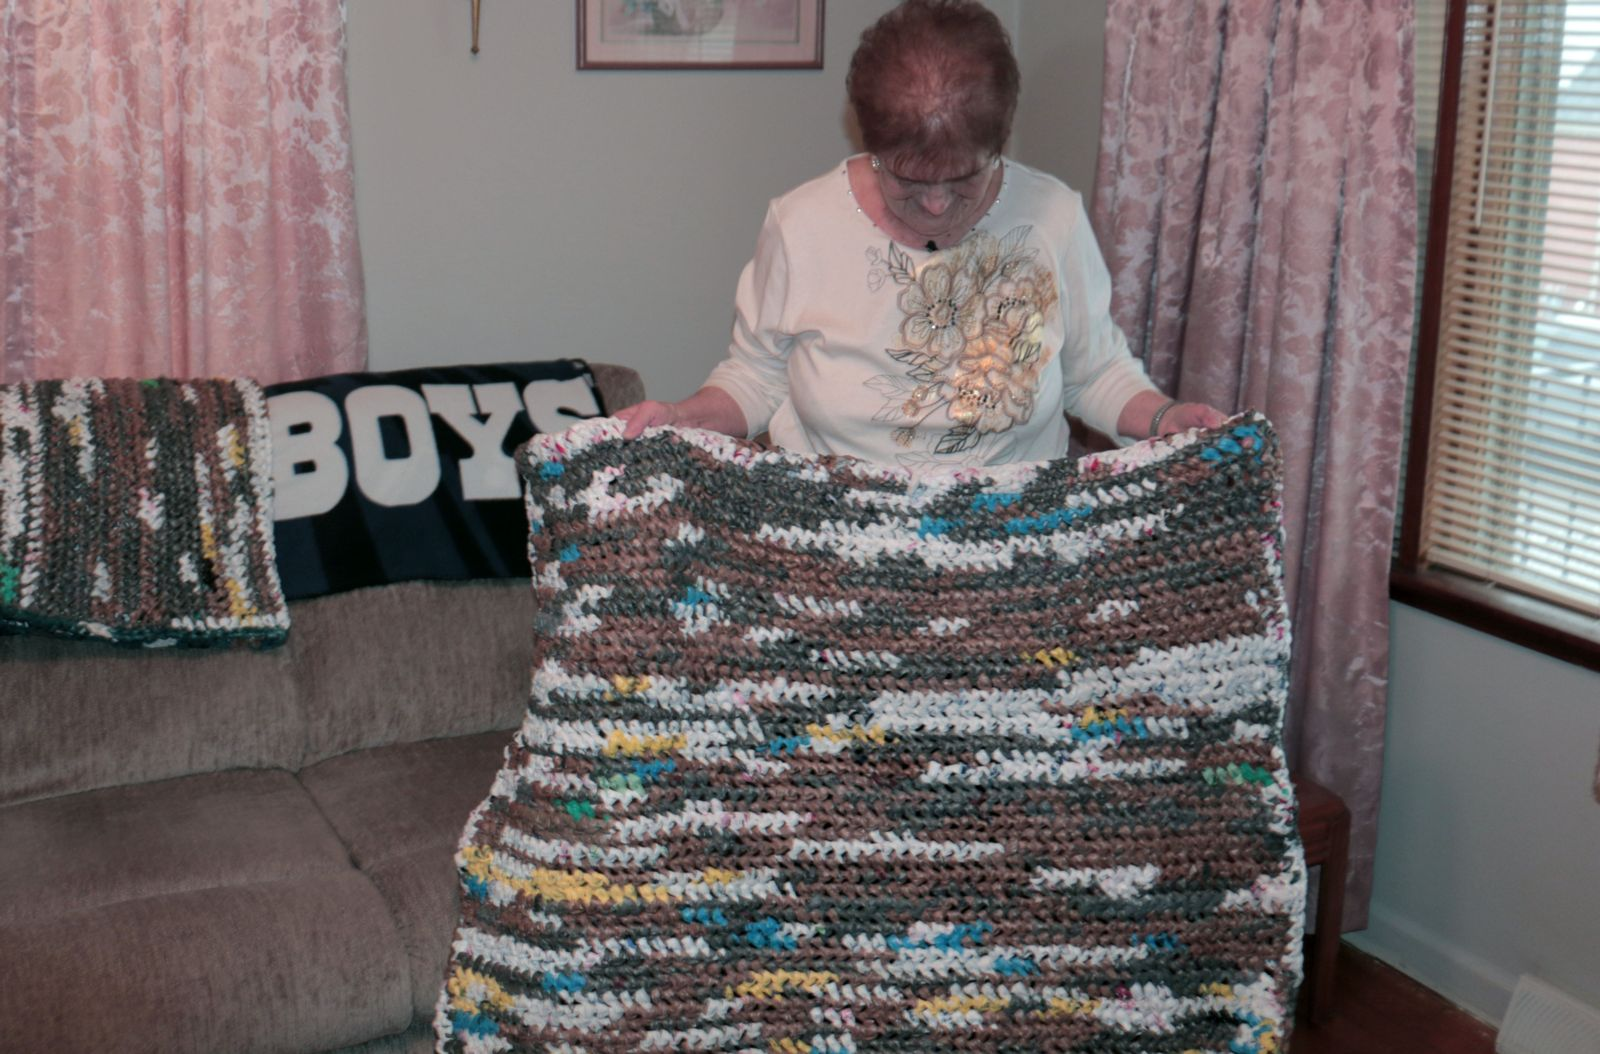 Marsha Whisler and her crocheted mat